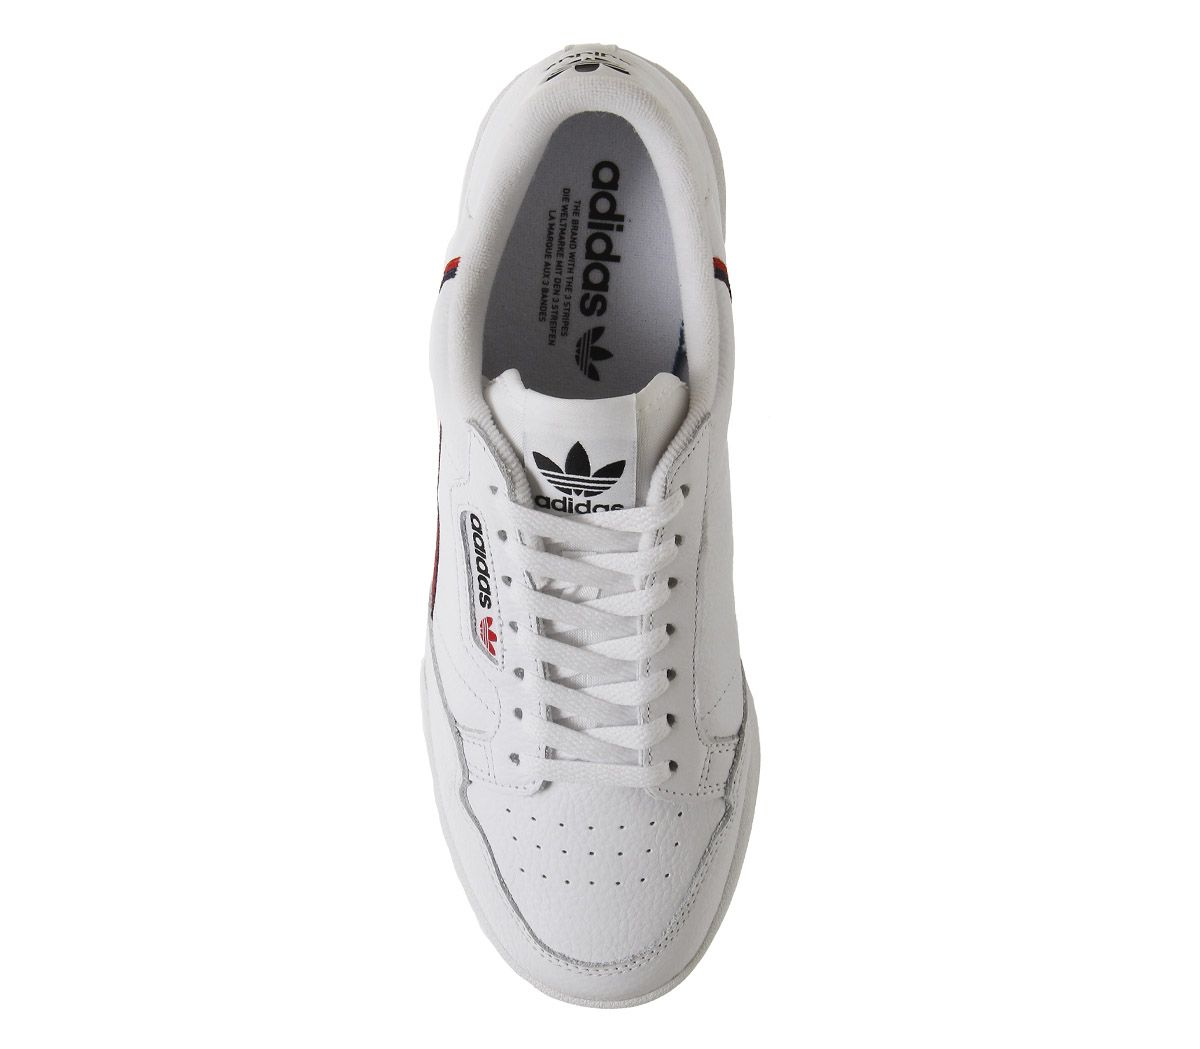 Adidas-80S-Continental-Trainers-White-White-Scarlet-Navy-Trainers-Shoes thumbnail 5